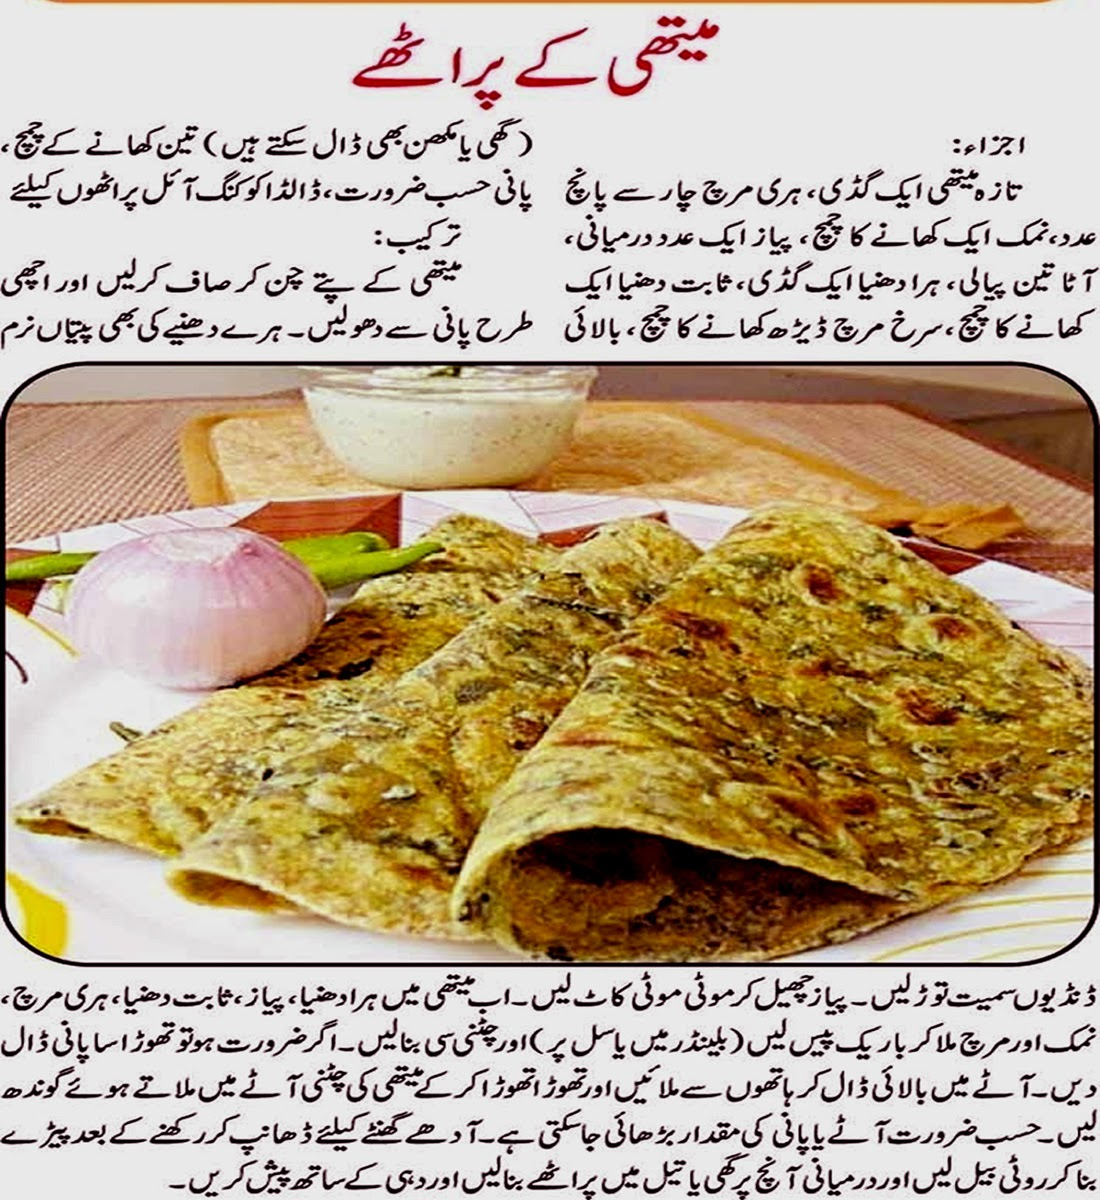 Urdu recepies 4u food recipe of methi ka pratha in urdu forumfinder Gallery